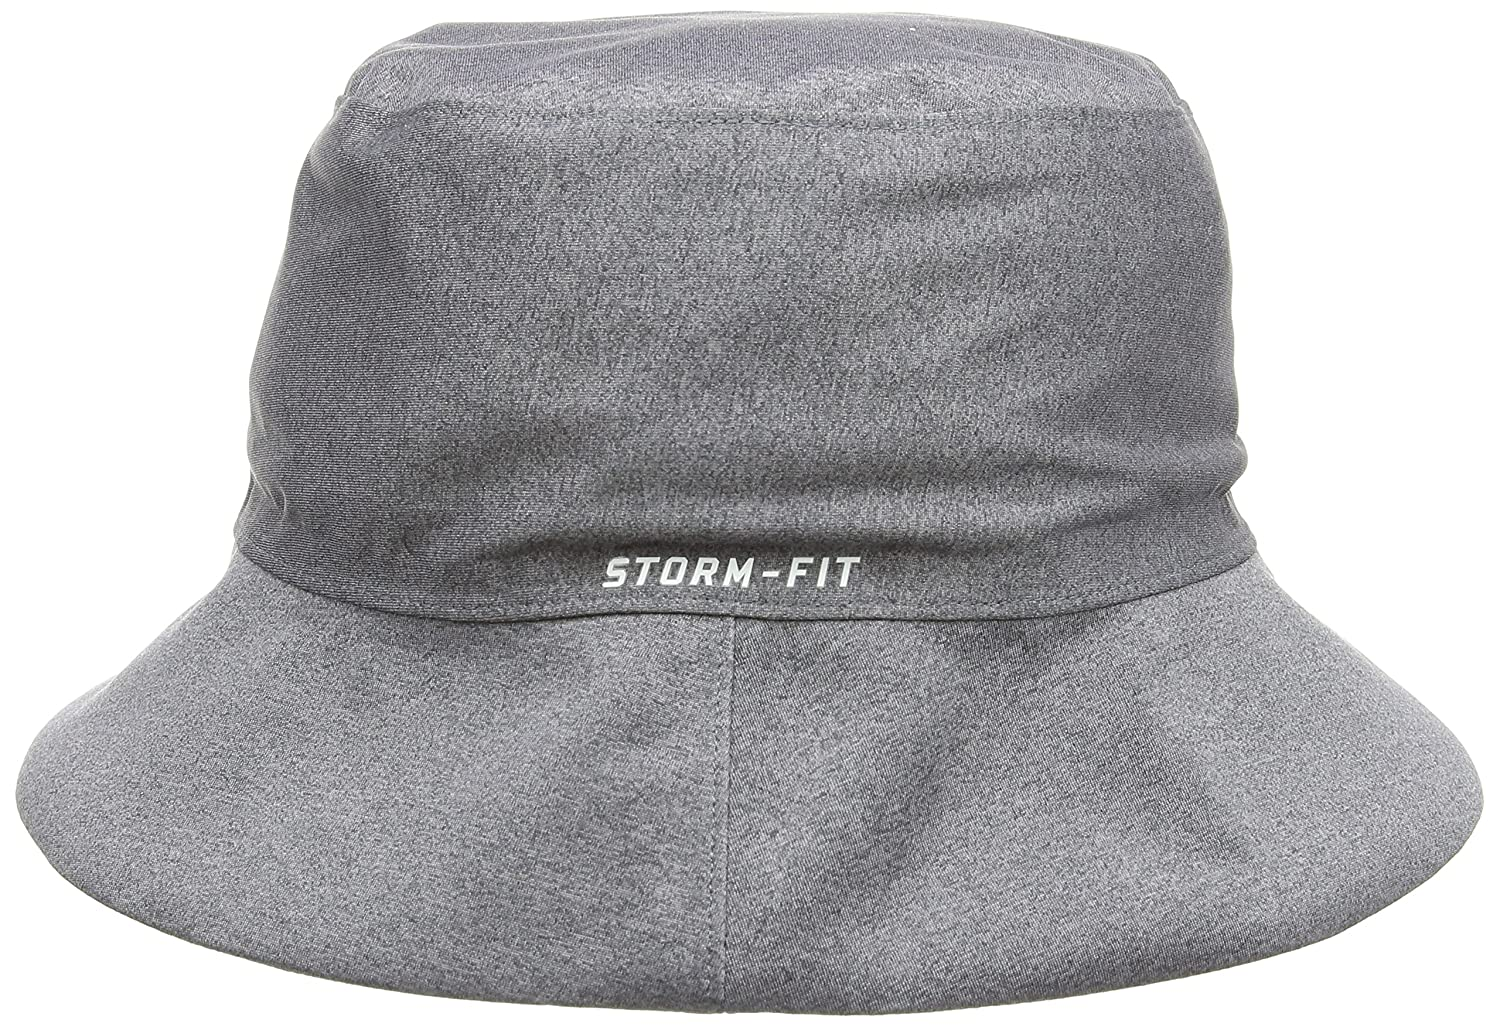 fb4f50597 2015 Nike Storm-Fit Unisex Waterproof Golf Bucket Hat Black Heather ...